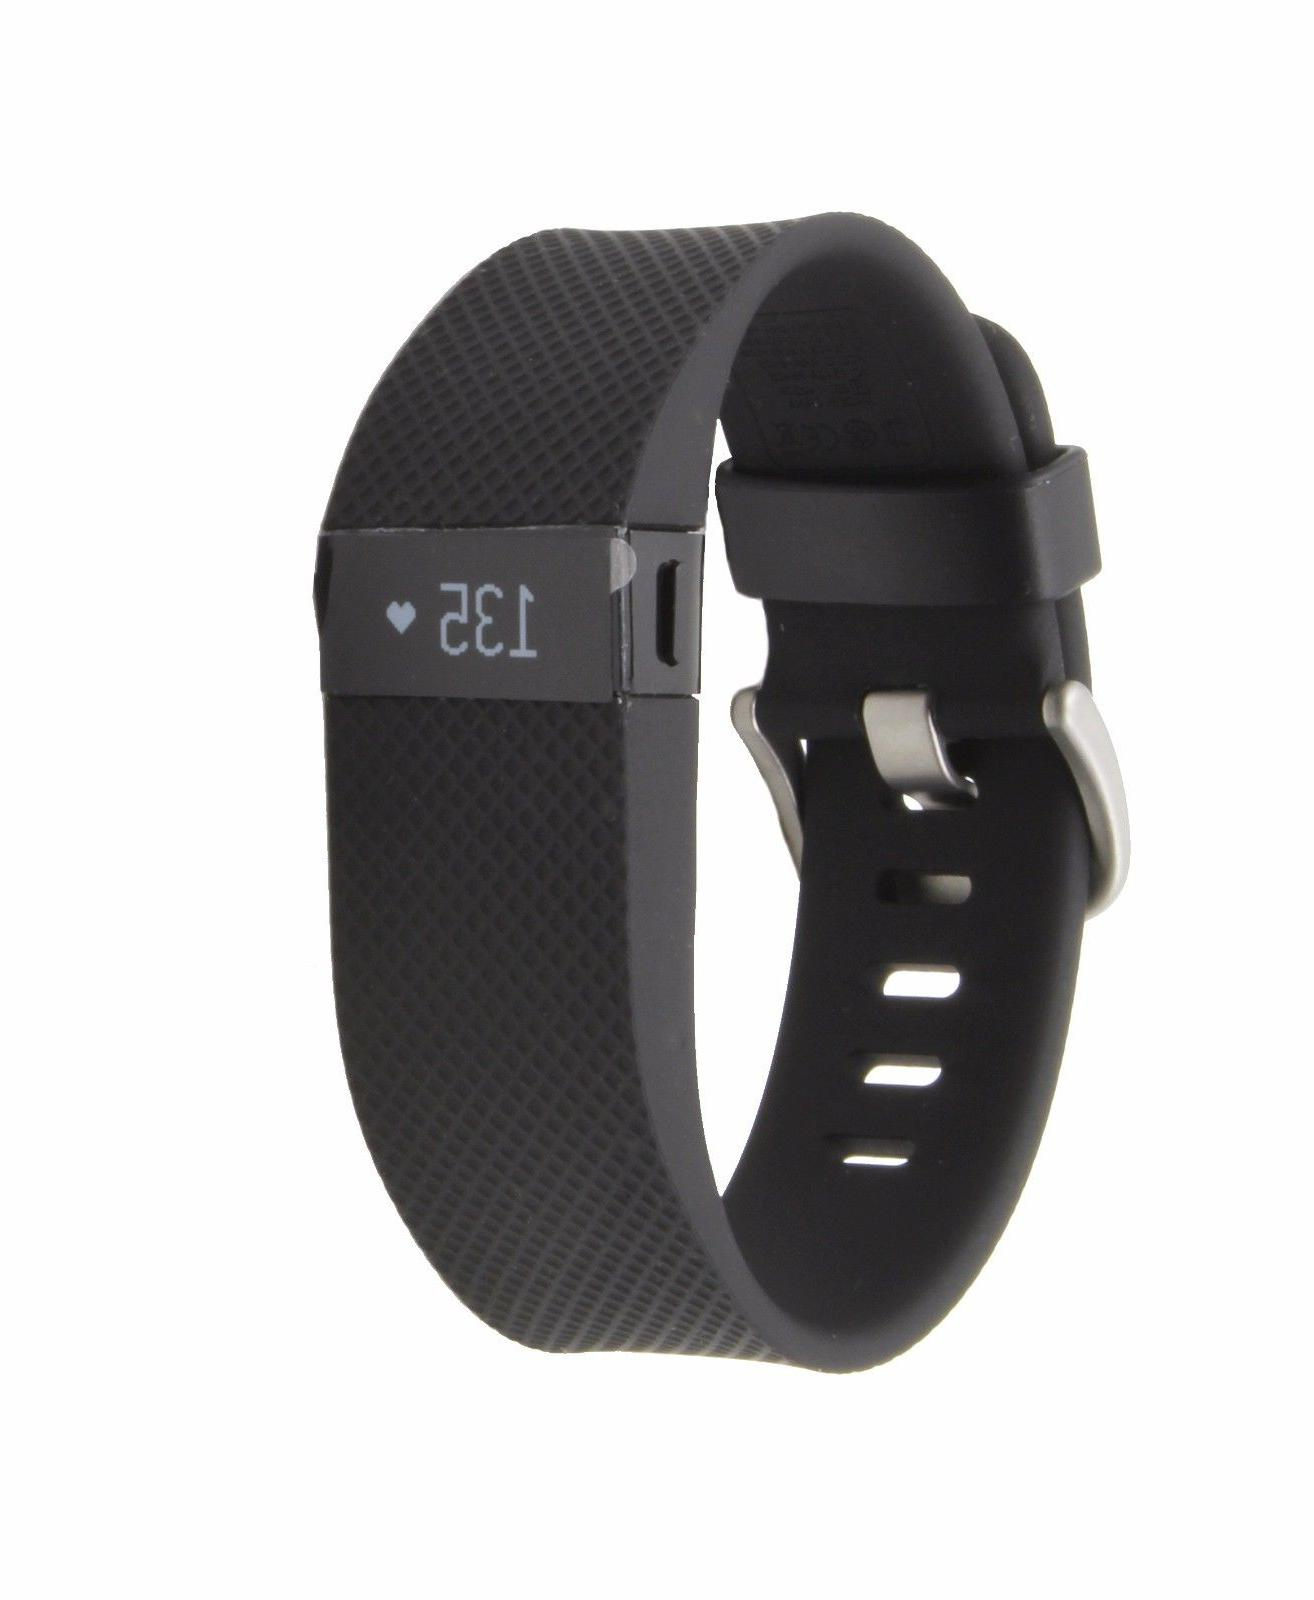 NEW Charge HR Wireless Activity & Heart Rate Sleep Wristband Black